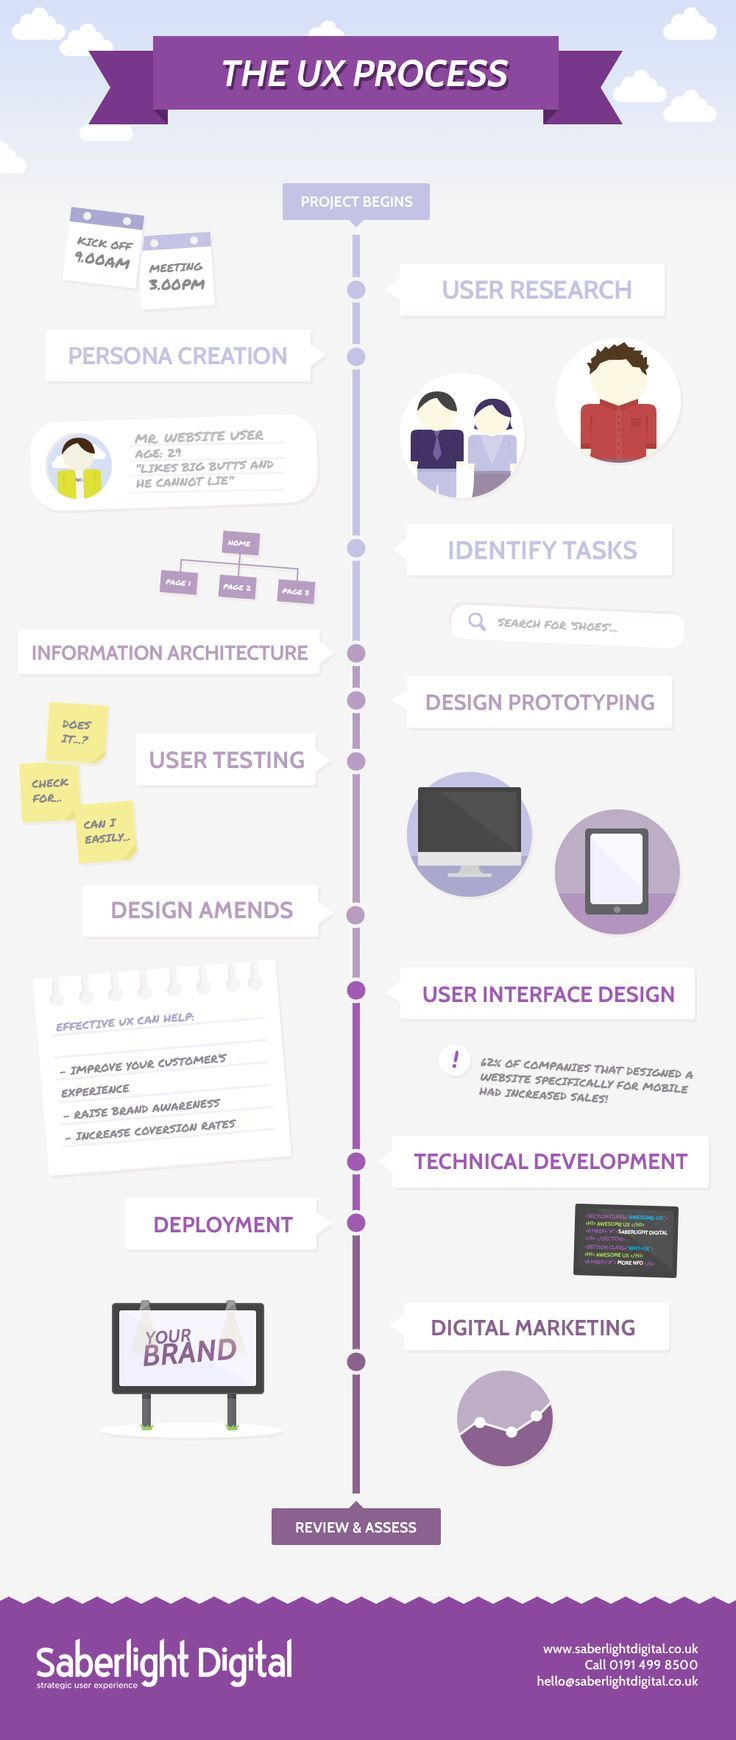 Ux Process Png By Russell Kerr Ux Process Learning Design Ux Design Process